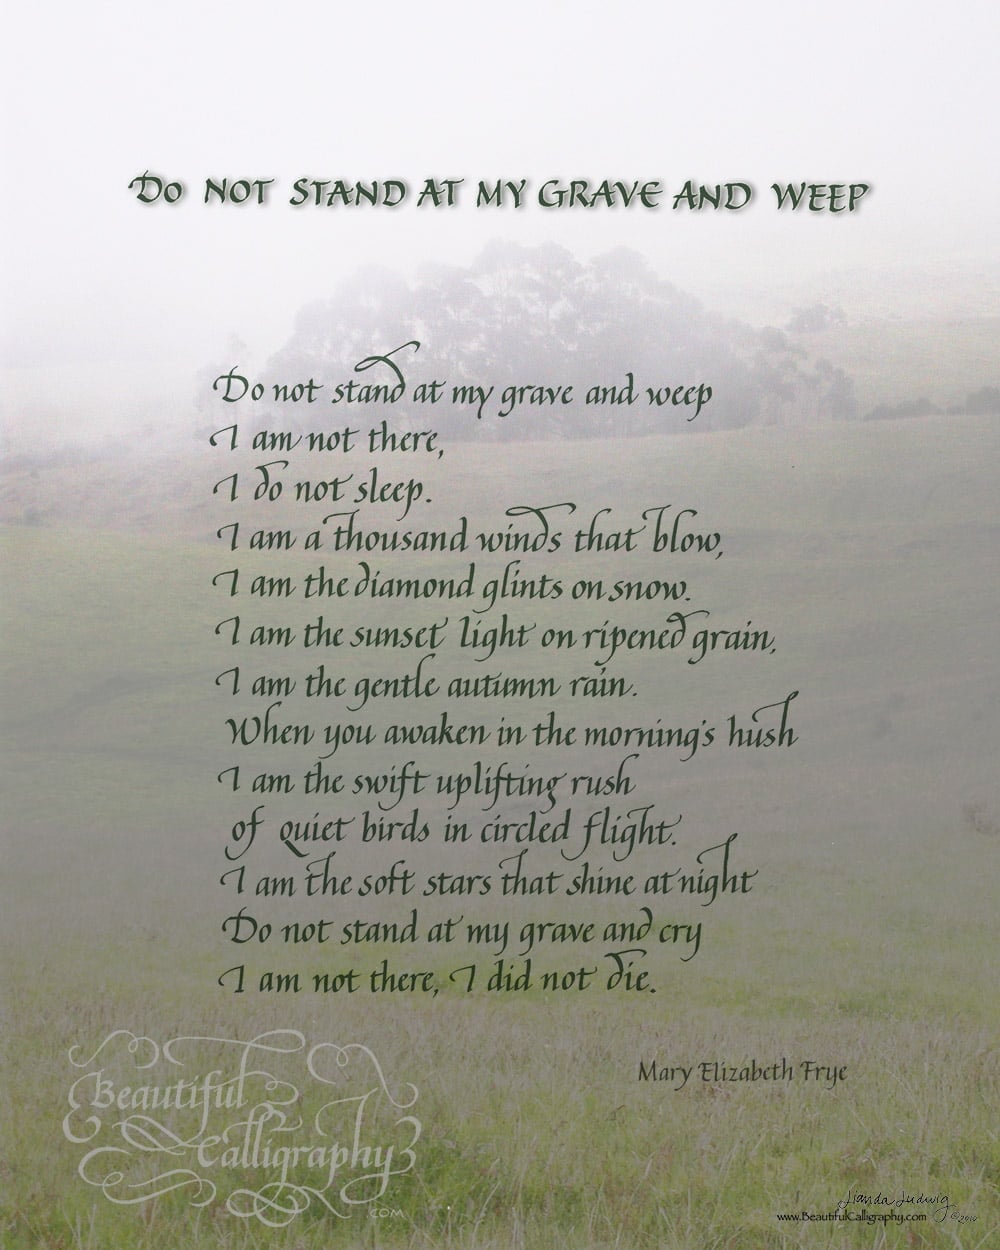 Do not stand at my grave and weep, Indian memorial poem in calligraphy